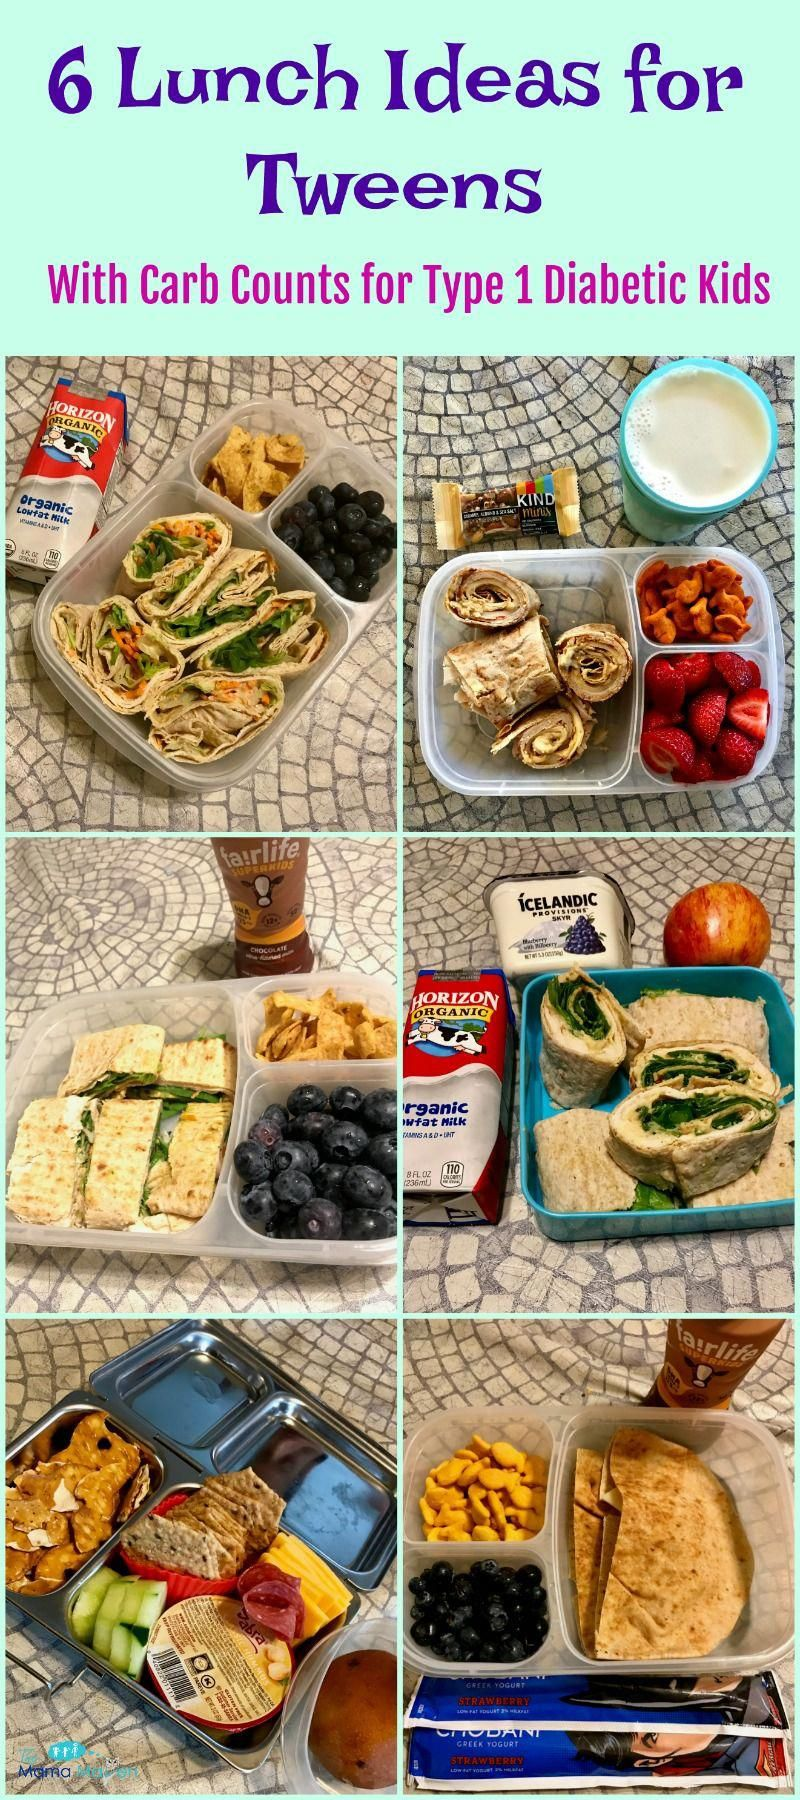 6 Lunch Ideas For Tweens With Carb Counts For Type 1 Diabetic Kids Diabetic Recipes For Kids Healthy Snacks For Diabetics Diabetic Snacks